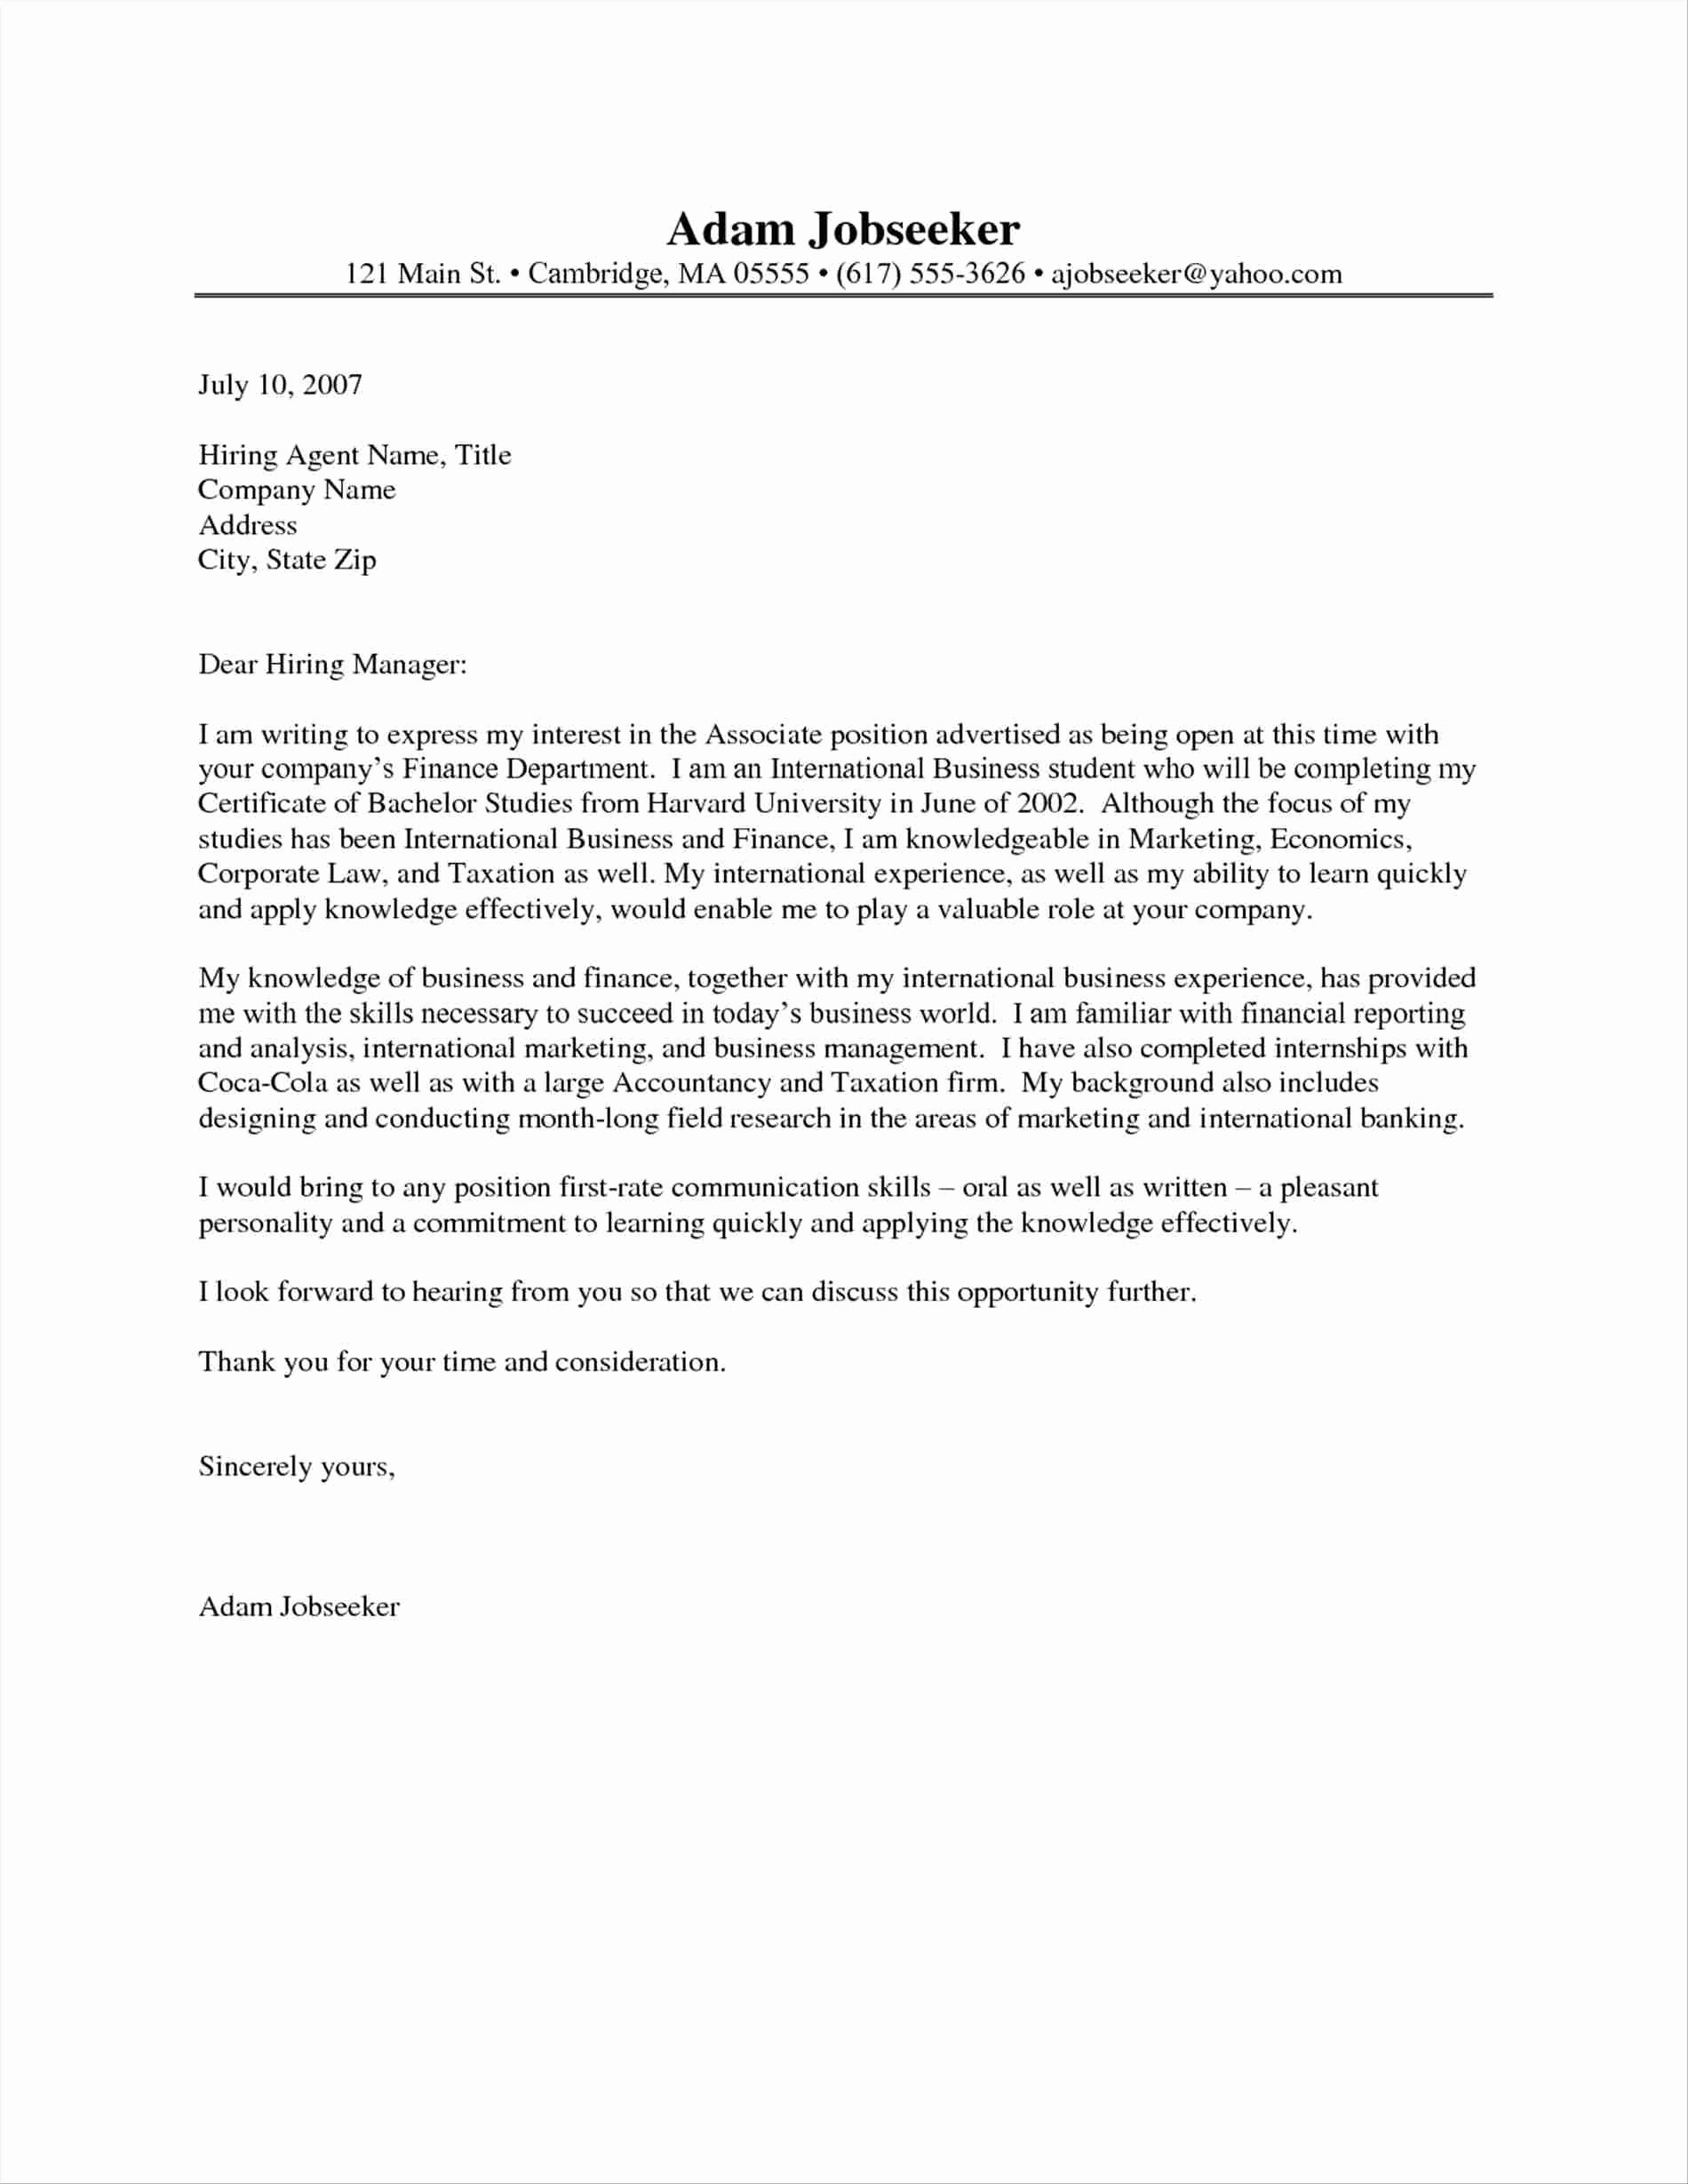 Software Engineering Internship Cover Letter